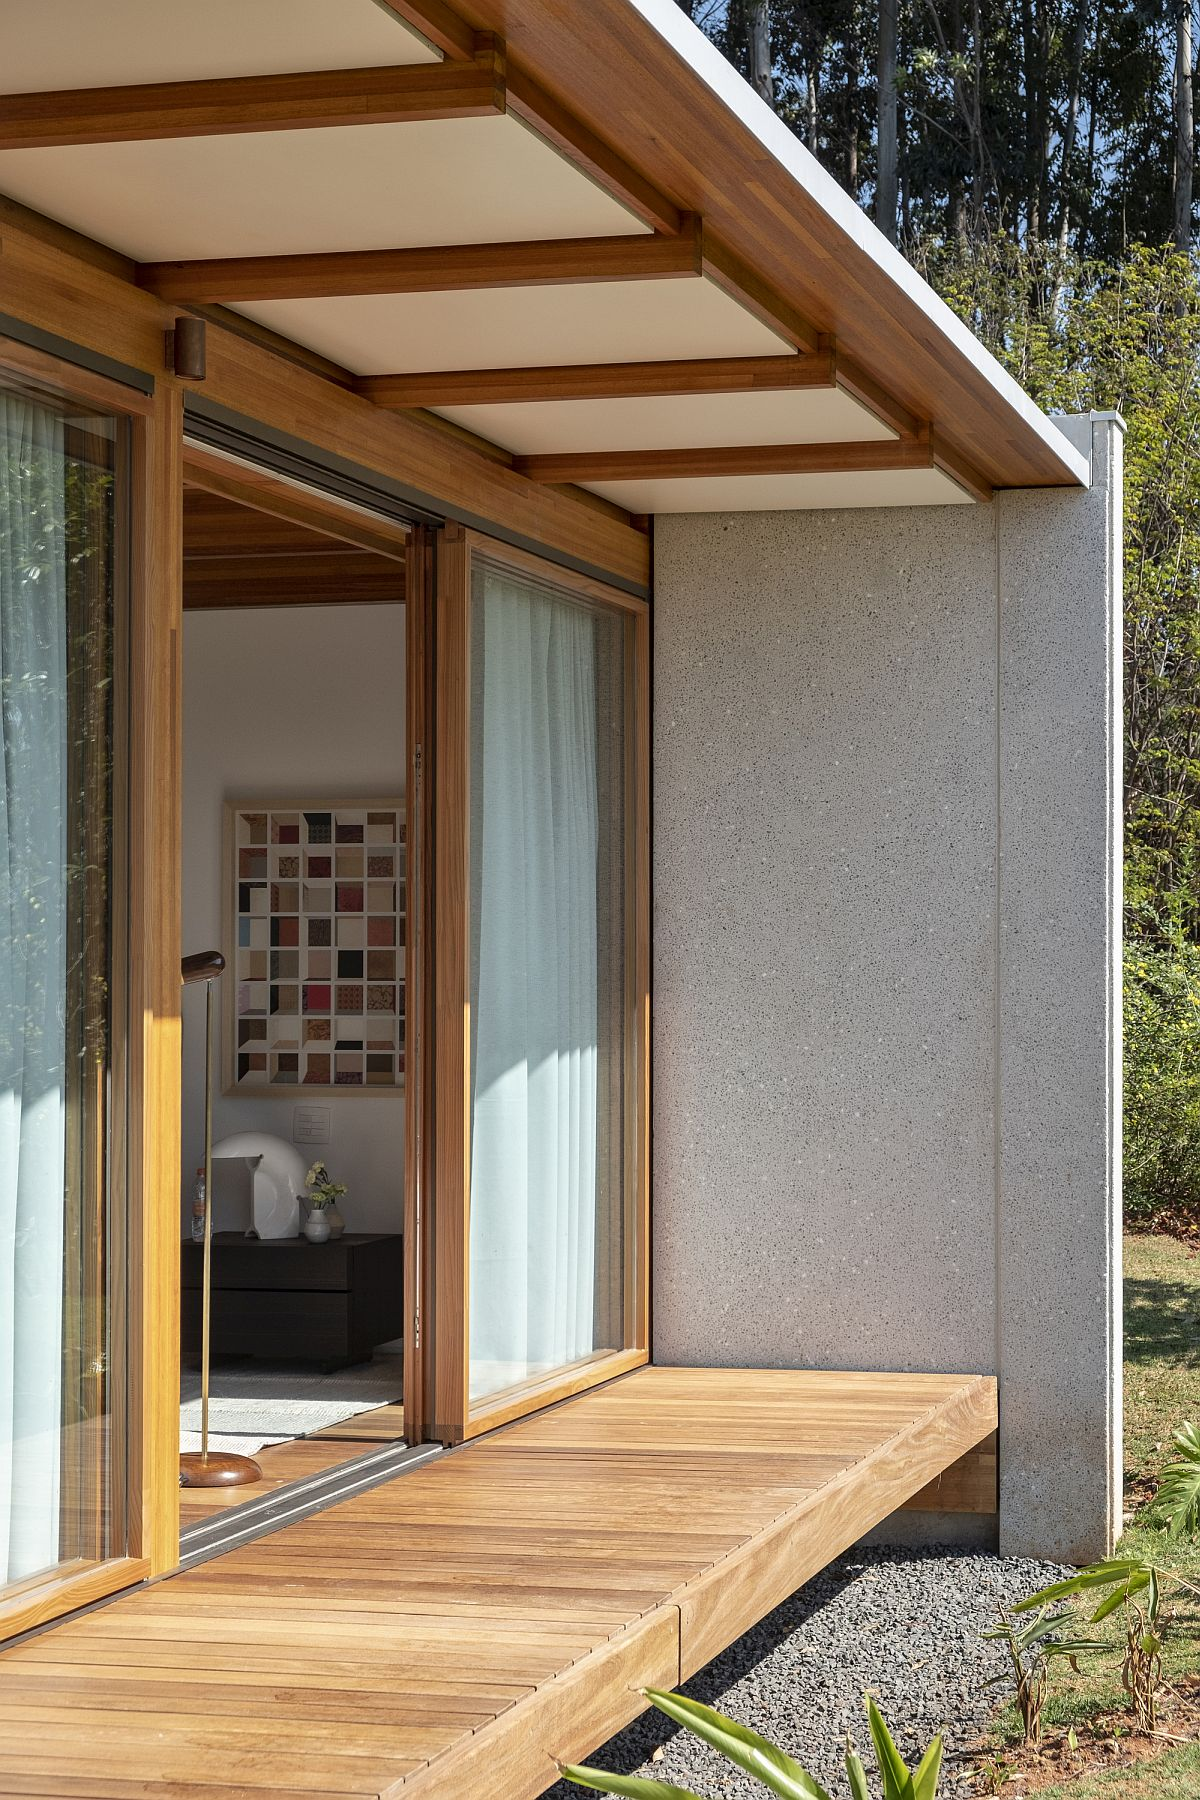 Drapes coupled with sliding doors allow those inside to switch between privacy and unabated views